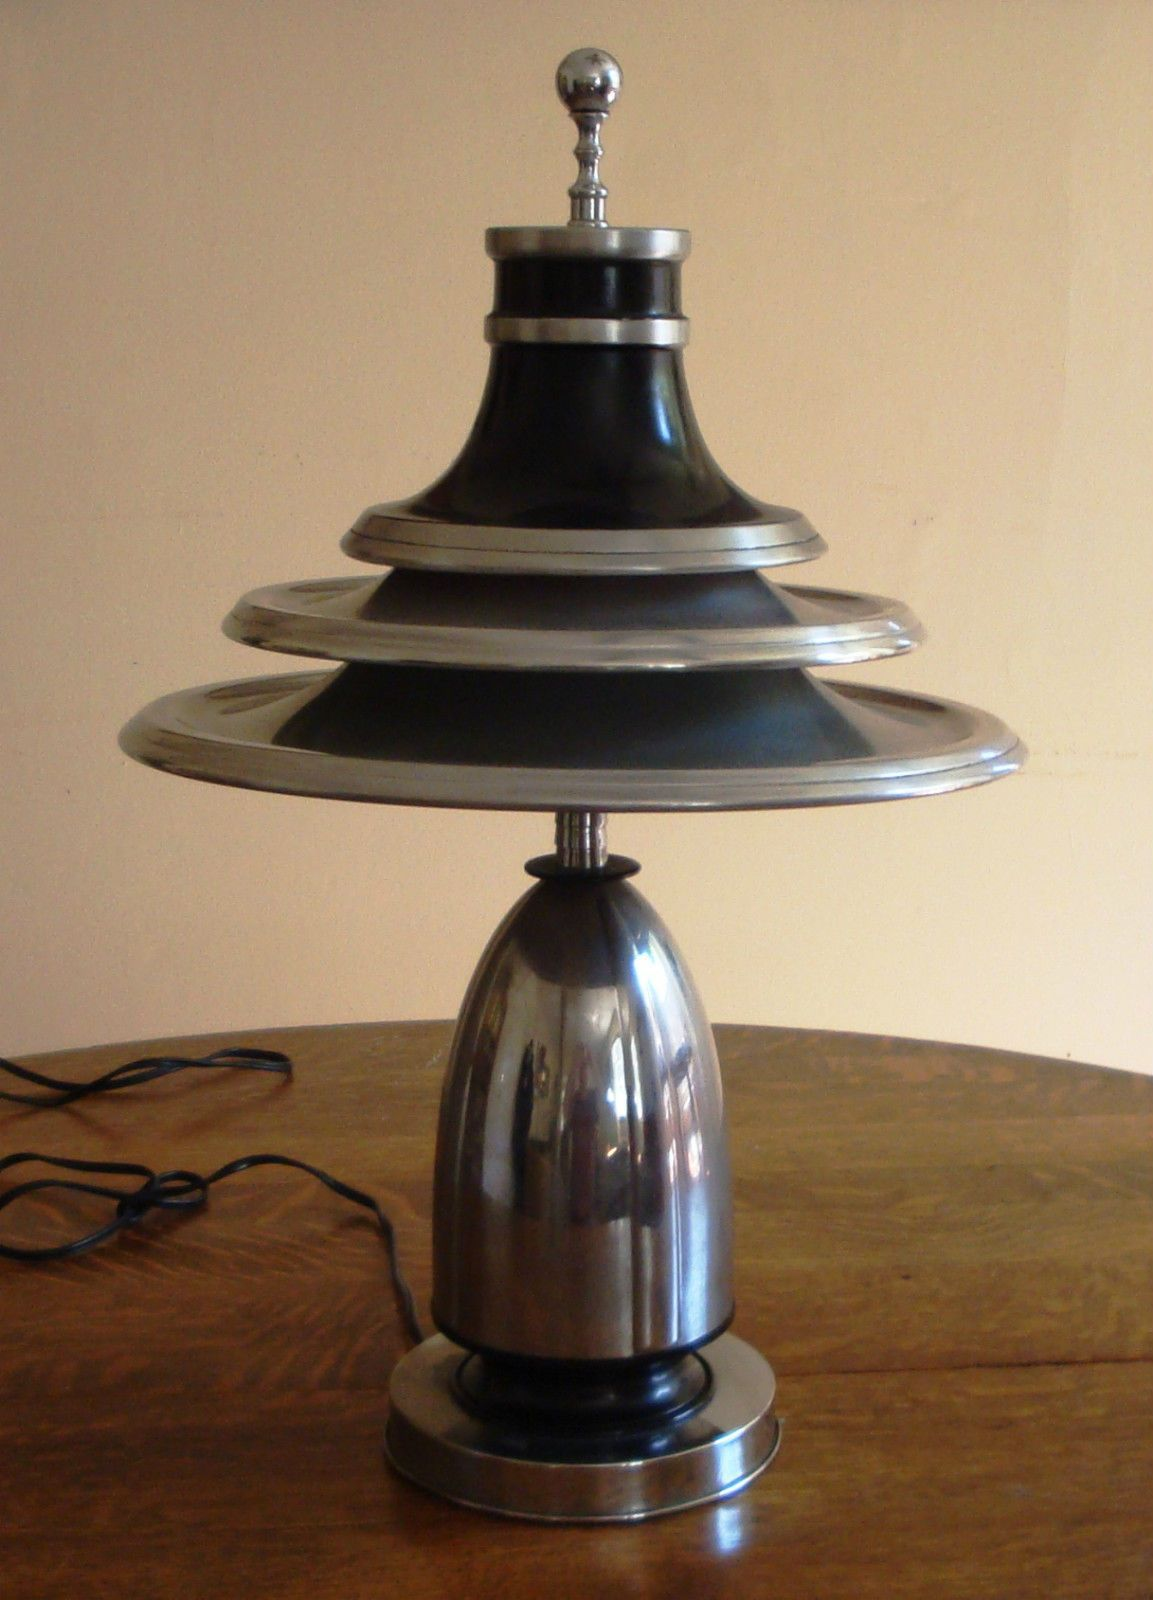 Vintage Iconic 1930s Art Deco Machine Age Moderne Table Lamp Light Edward Kent Ebay Art Deco Lighting Art Deco Lamps Art Deco Decor